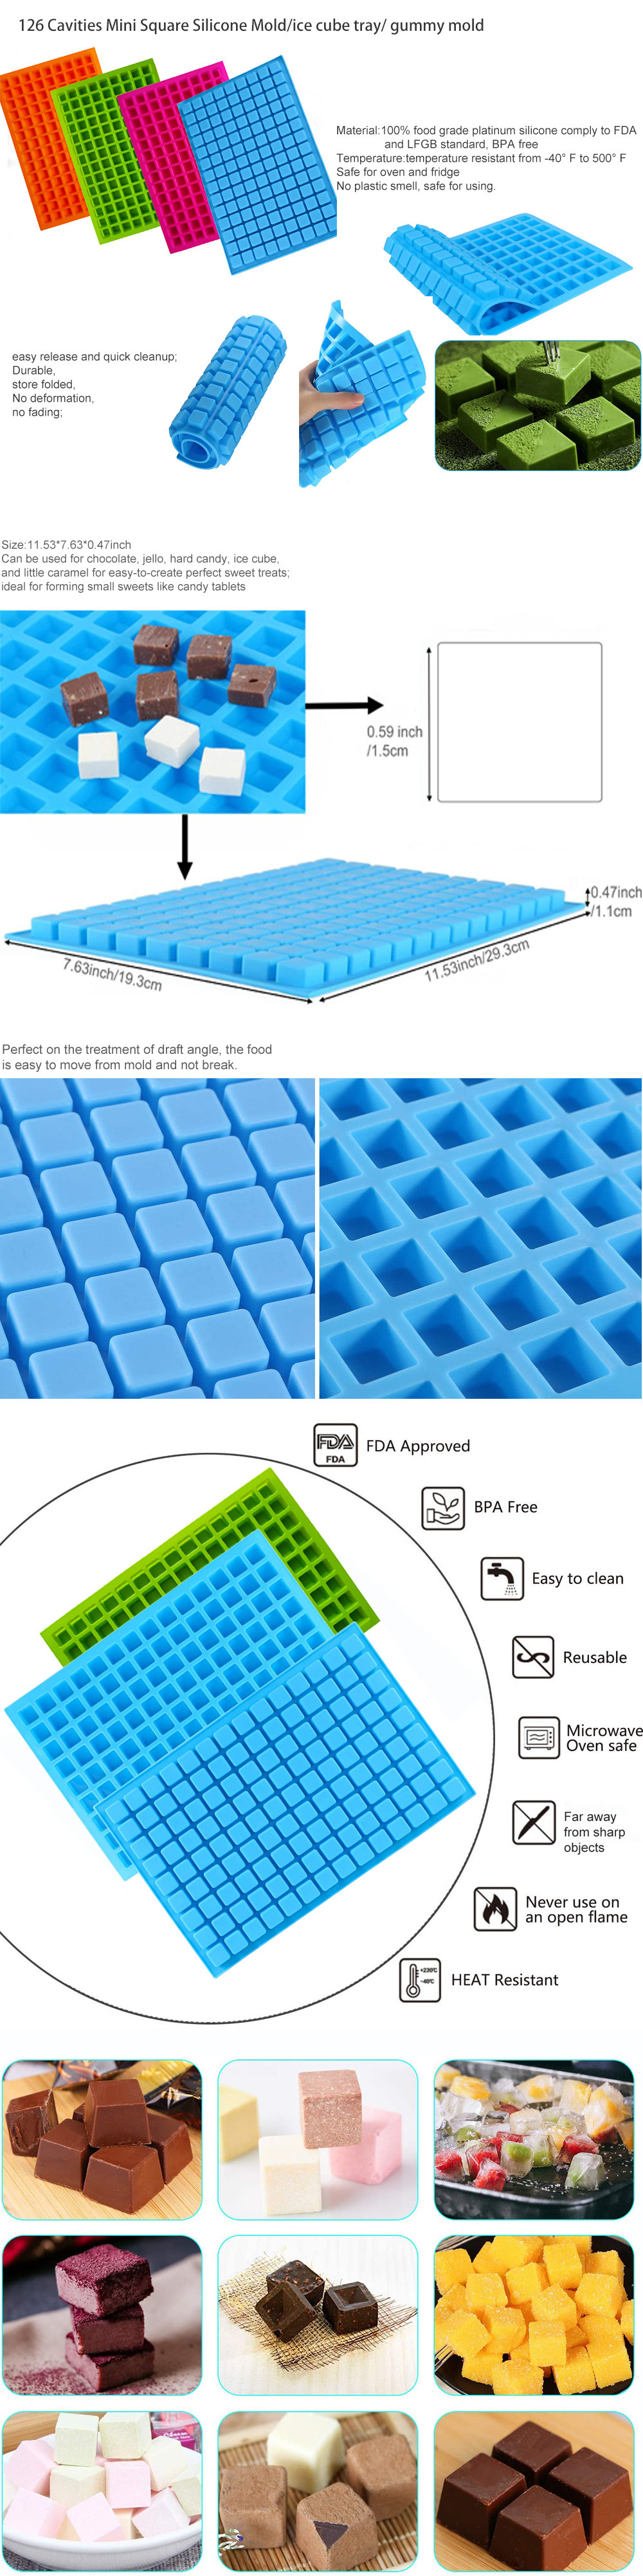 Novelty Food Grade Silicone 160 Grids Small Ice Maker Silicone Ice Cube Trays Buy Silicone Ice Cube New Design Custom Ice Cube Tray Silicone Ice Tray Product On Alibaba Com